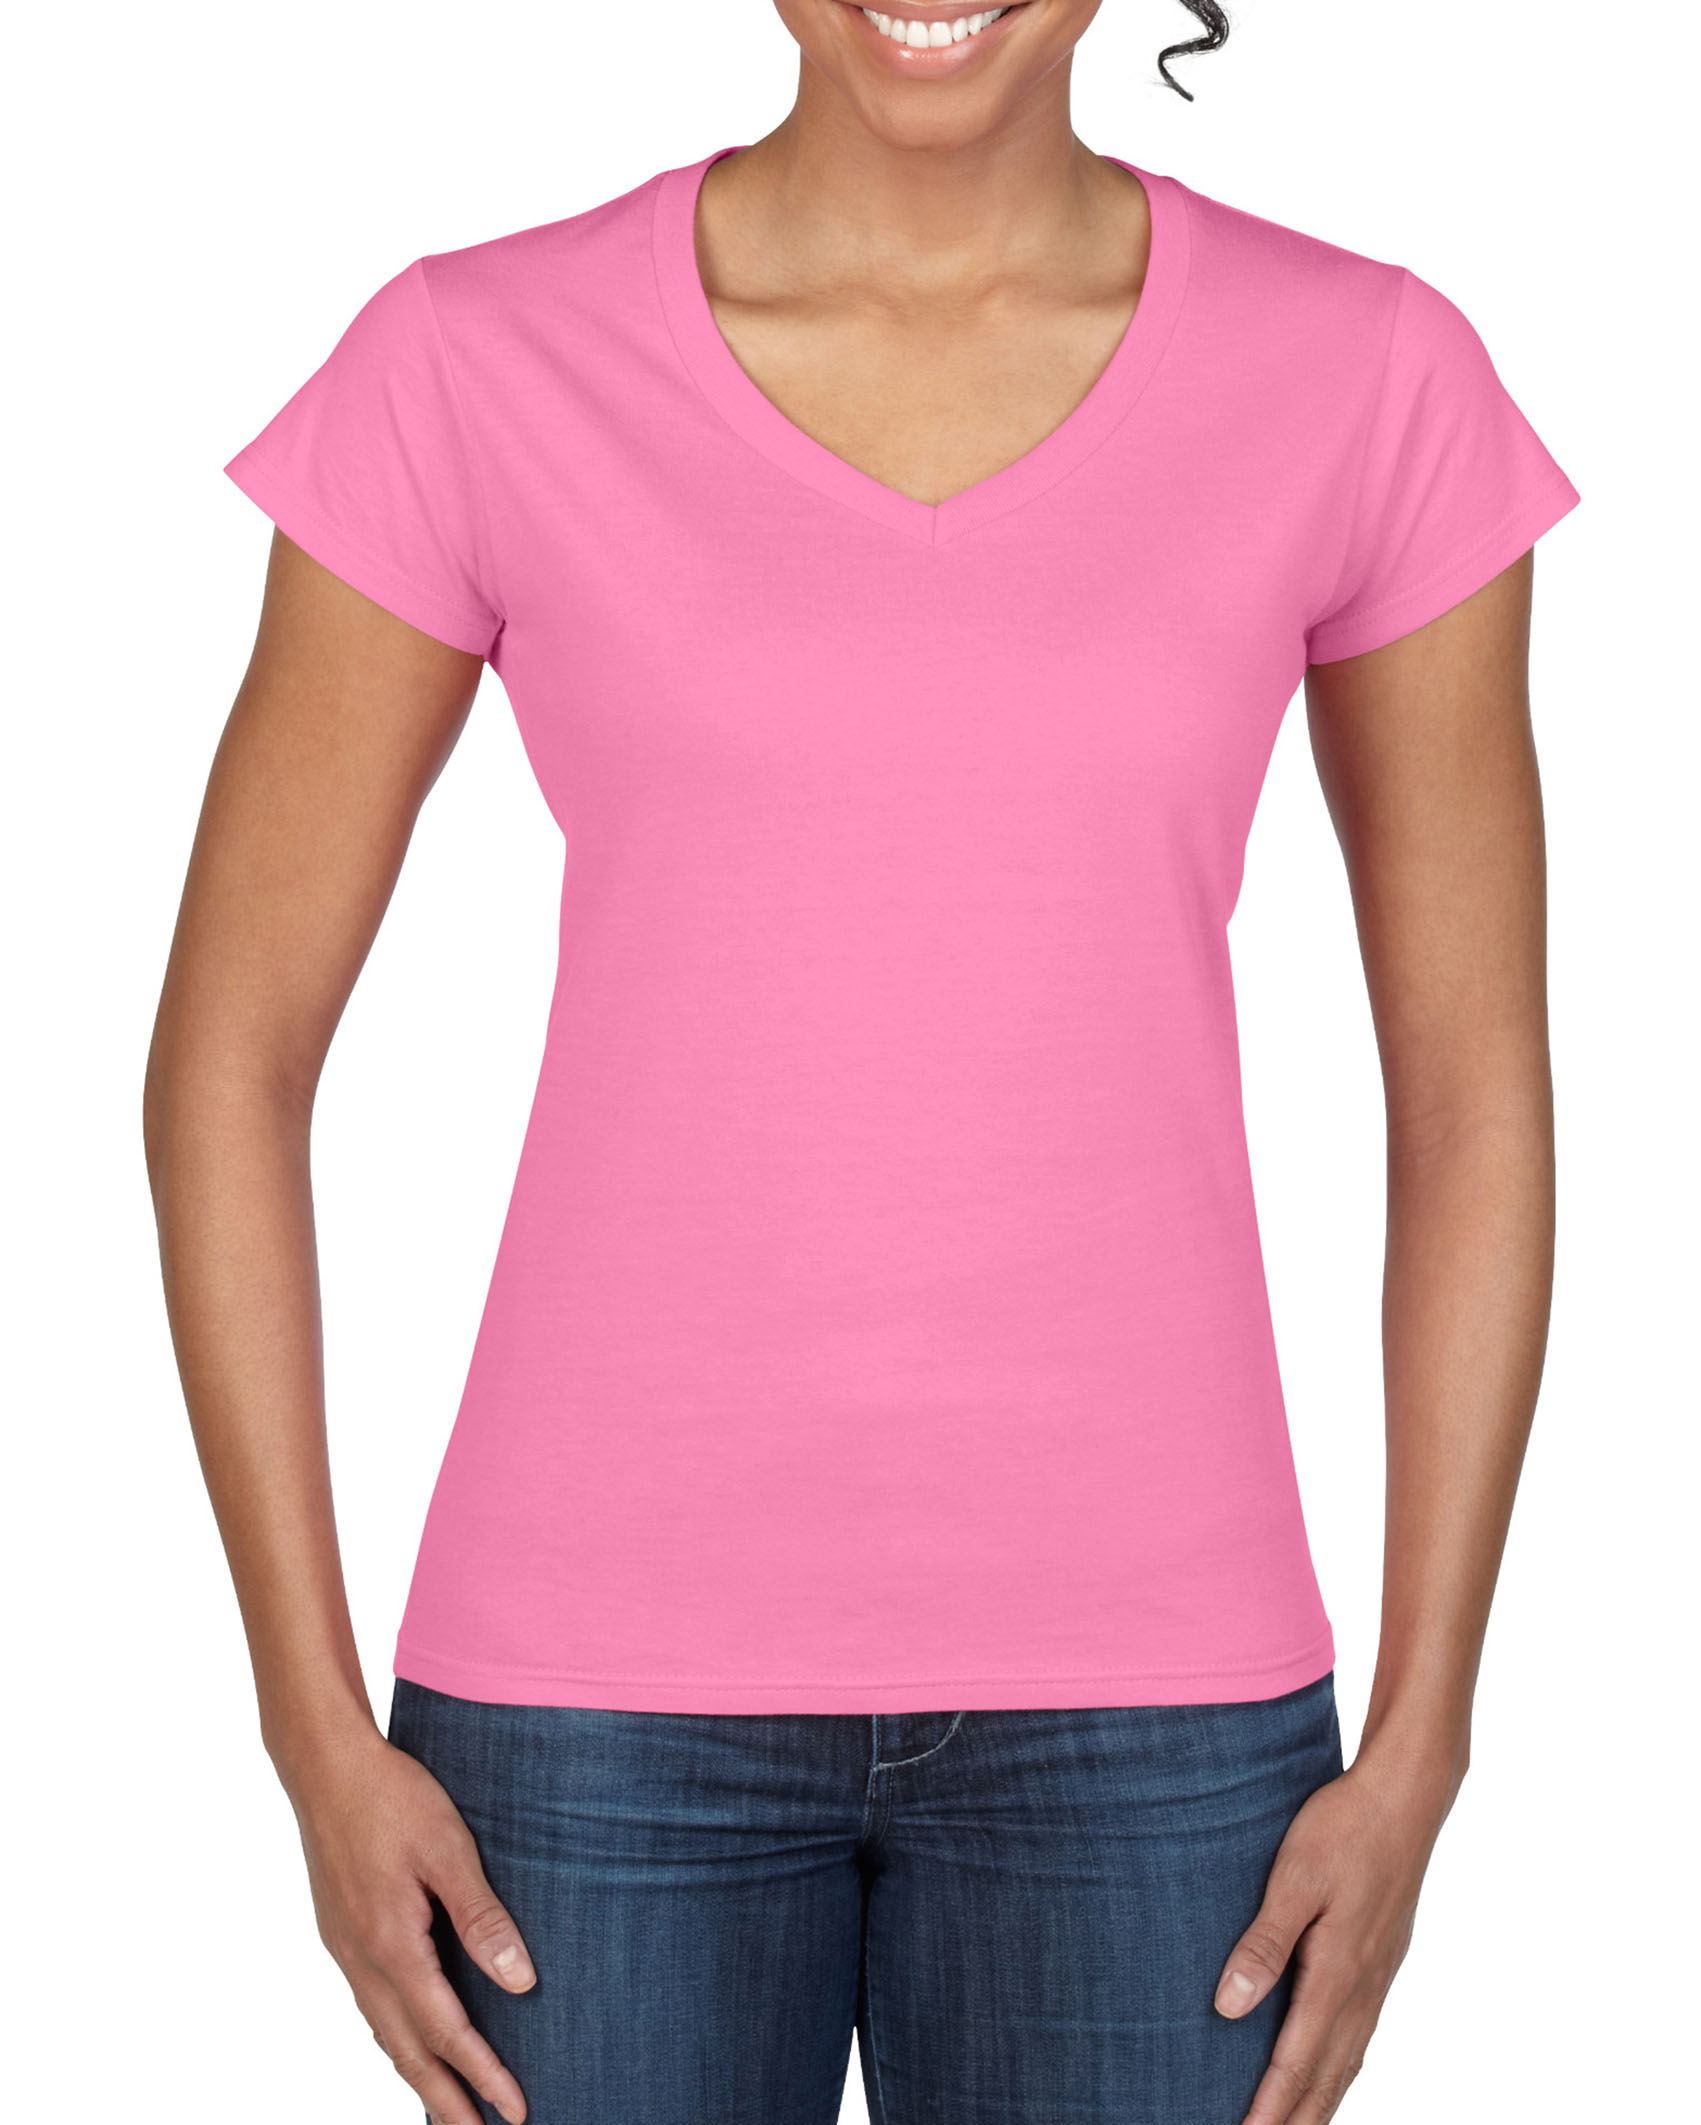 Gildan T-shirt V-Neck SoftStyle for her